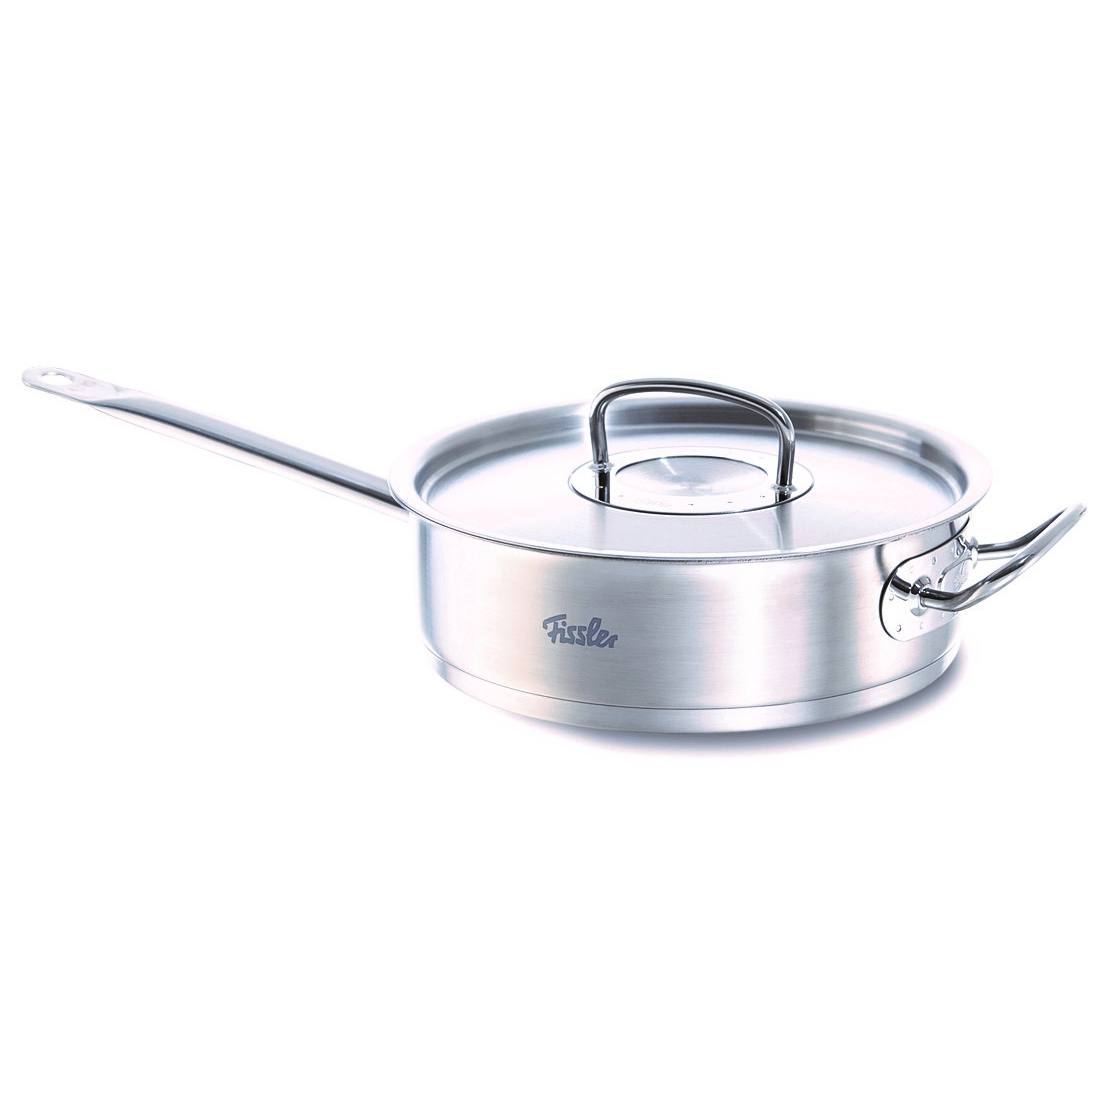 Fissler Stainless Steel 5 Quart Original Profi Saute Pan with Lid, Stick and Handle